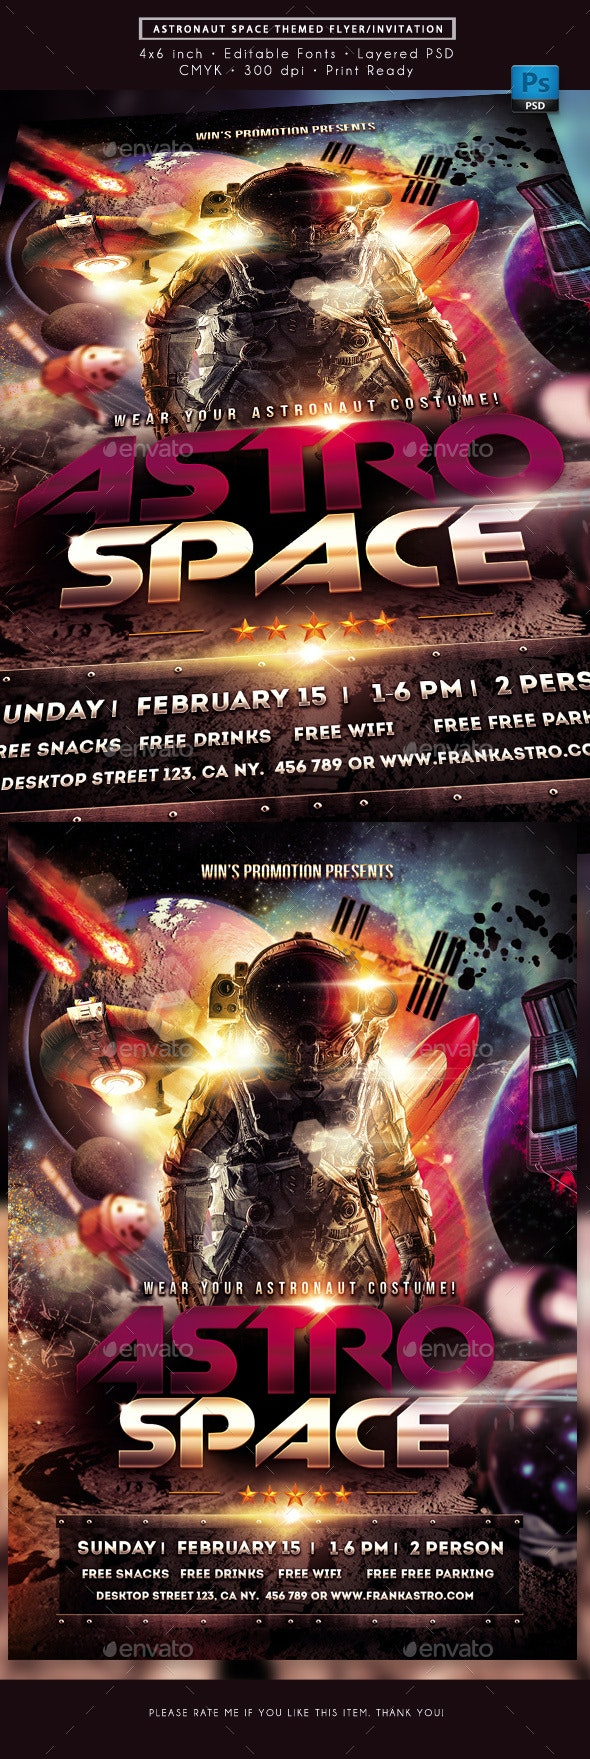 Space Astronaut Themed Event Flyer - Miscellaneous Events